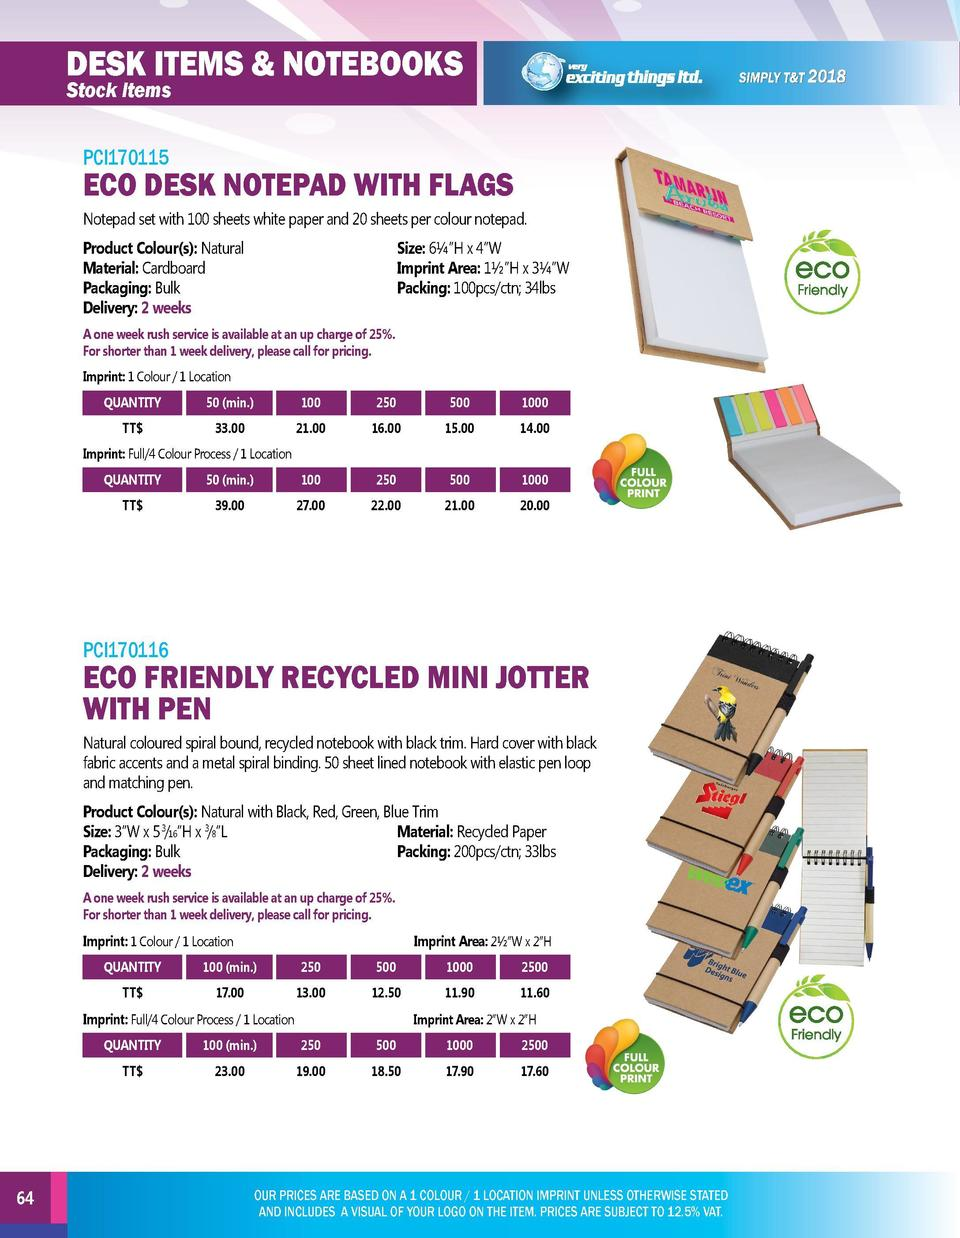 DESK ITEMS   NOTEBOOKS  DESK ITEMS   NOTEBOOKS  Stock Items  Stock Items PCI170117  PCI170115  ECO DESK NOTEPAD WITH FLAGS...